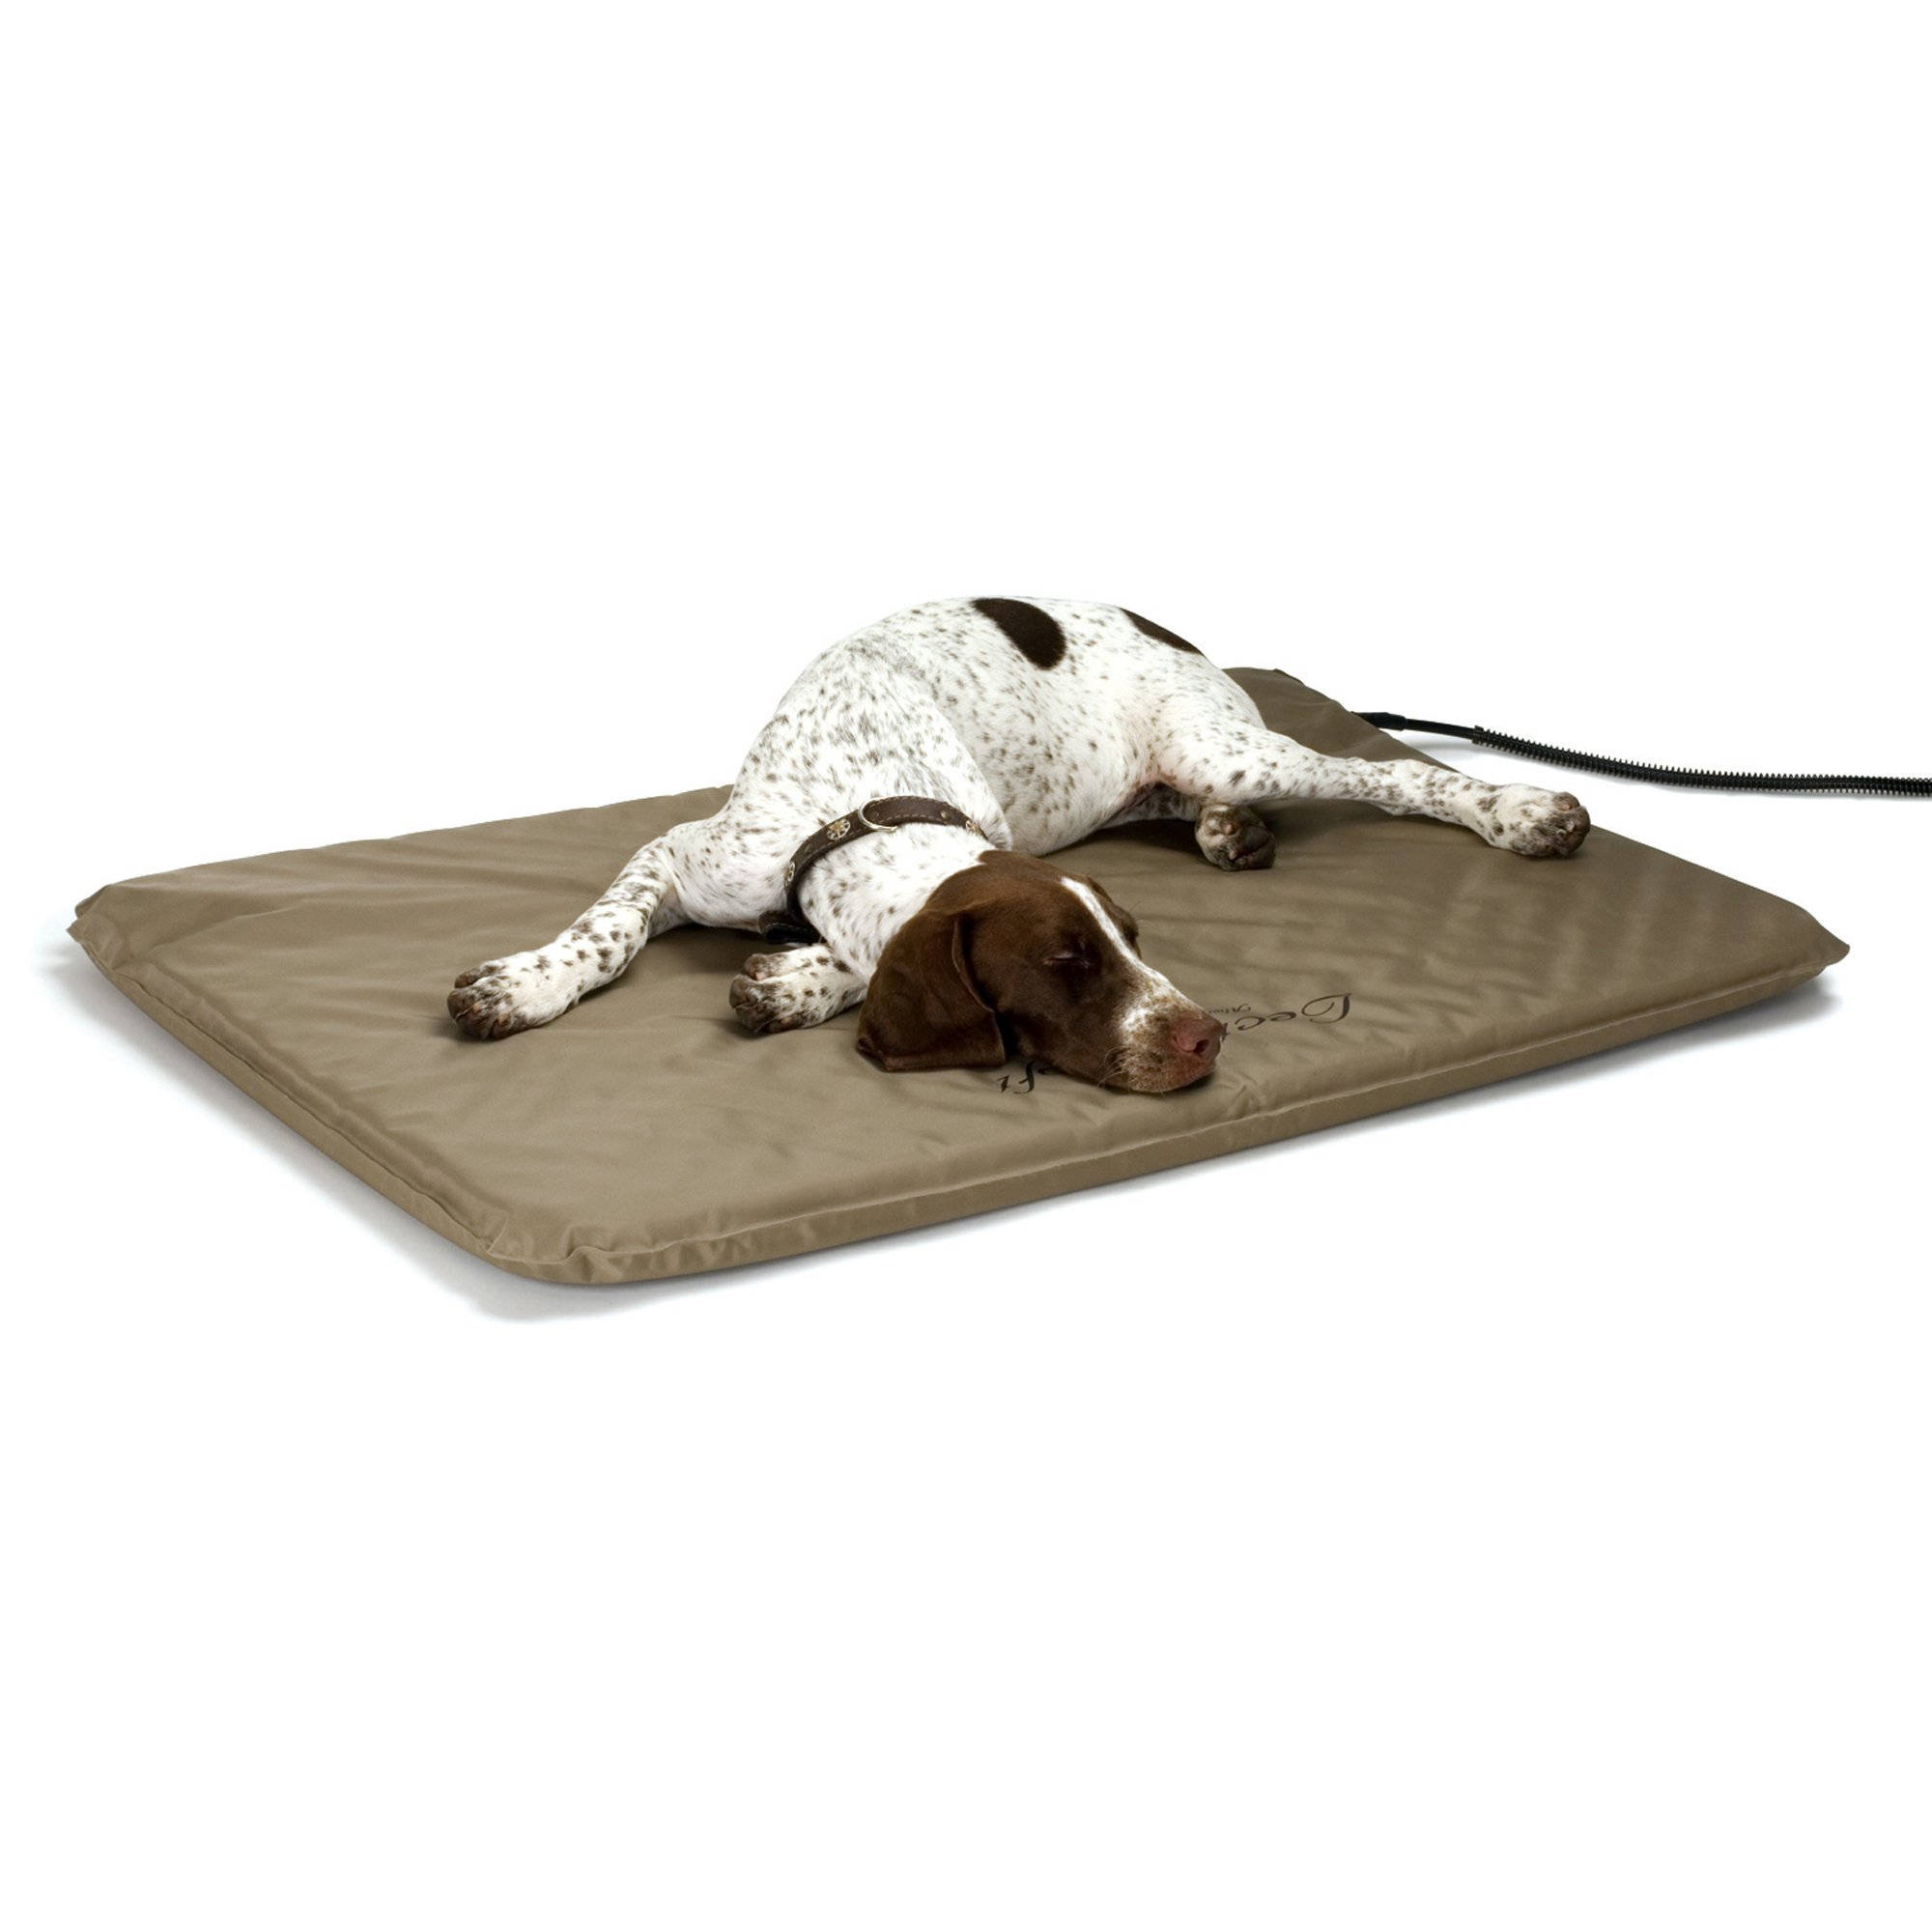 K&H Lectro-Soft Outdoor Heated Dog Bed